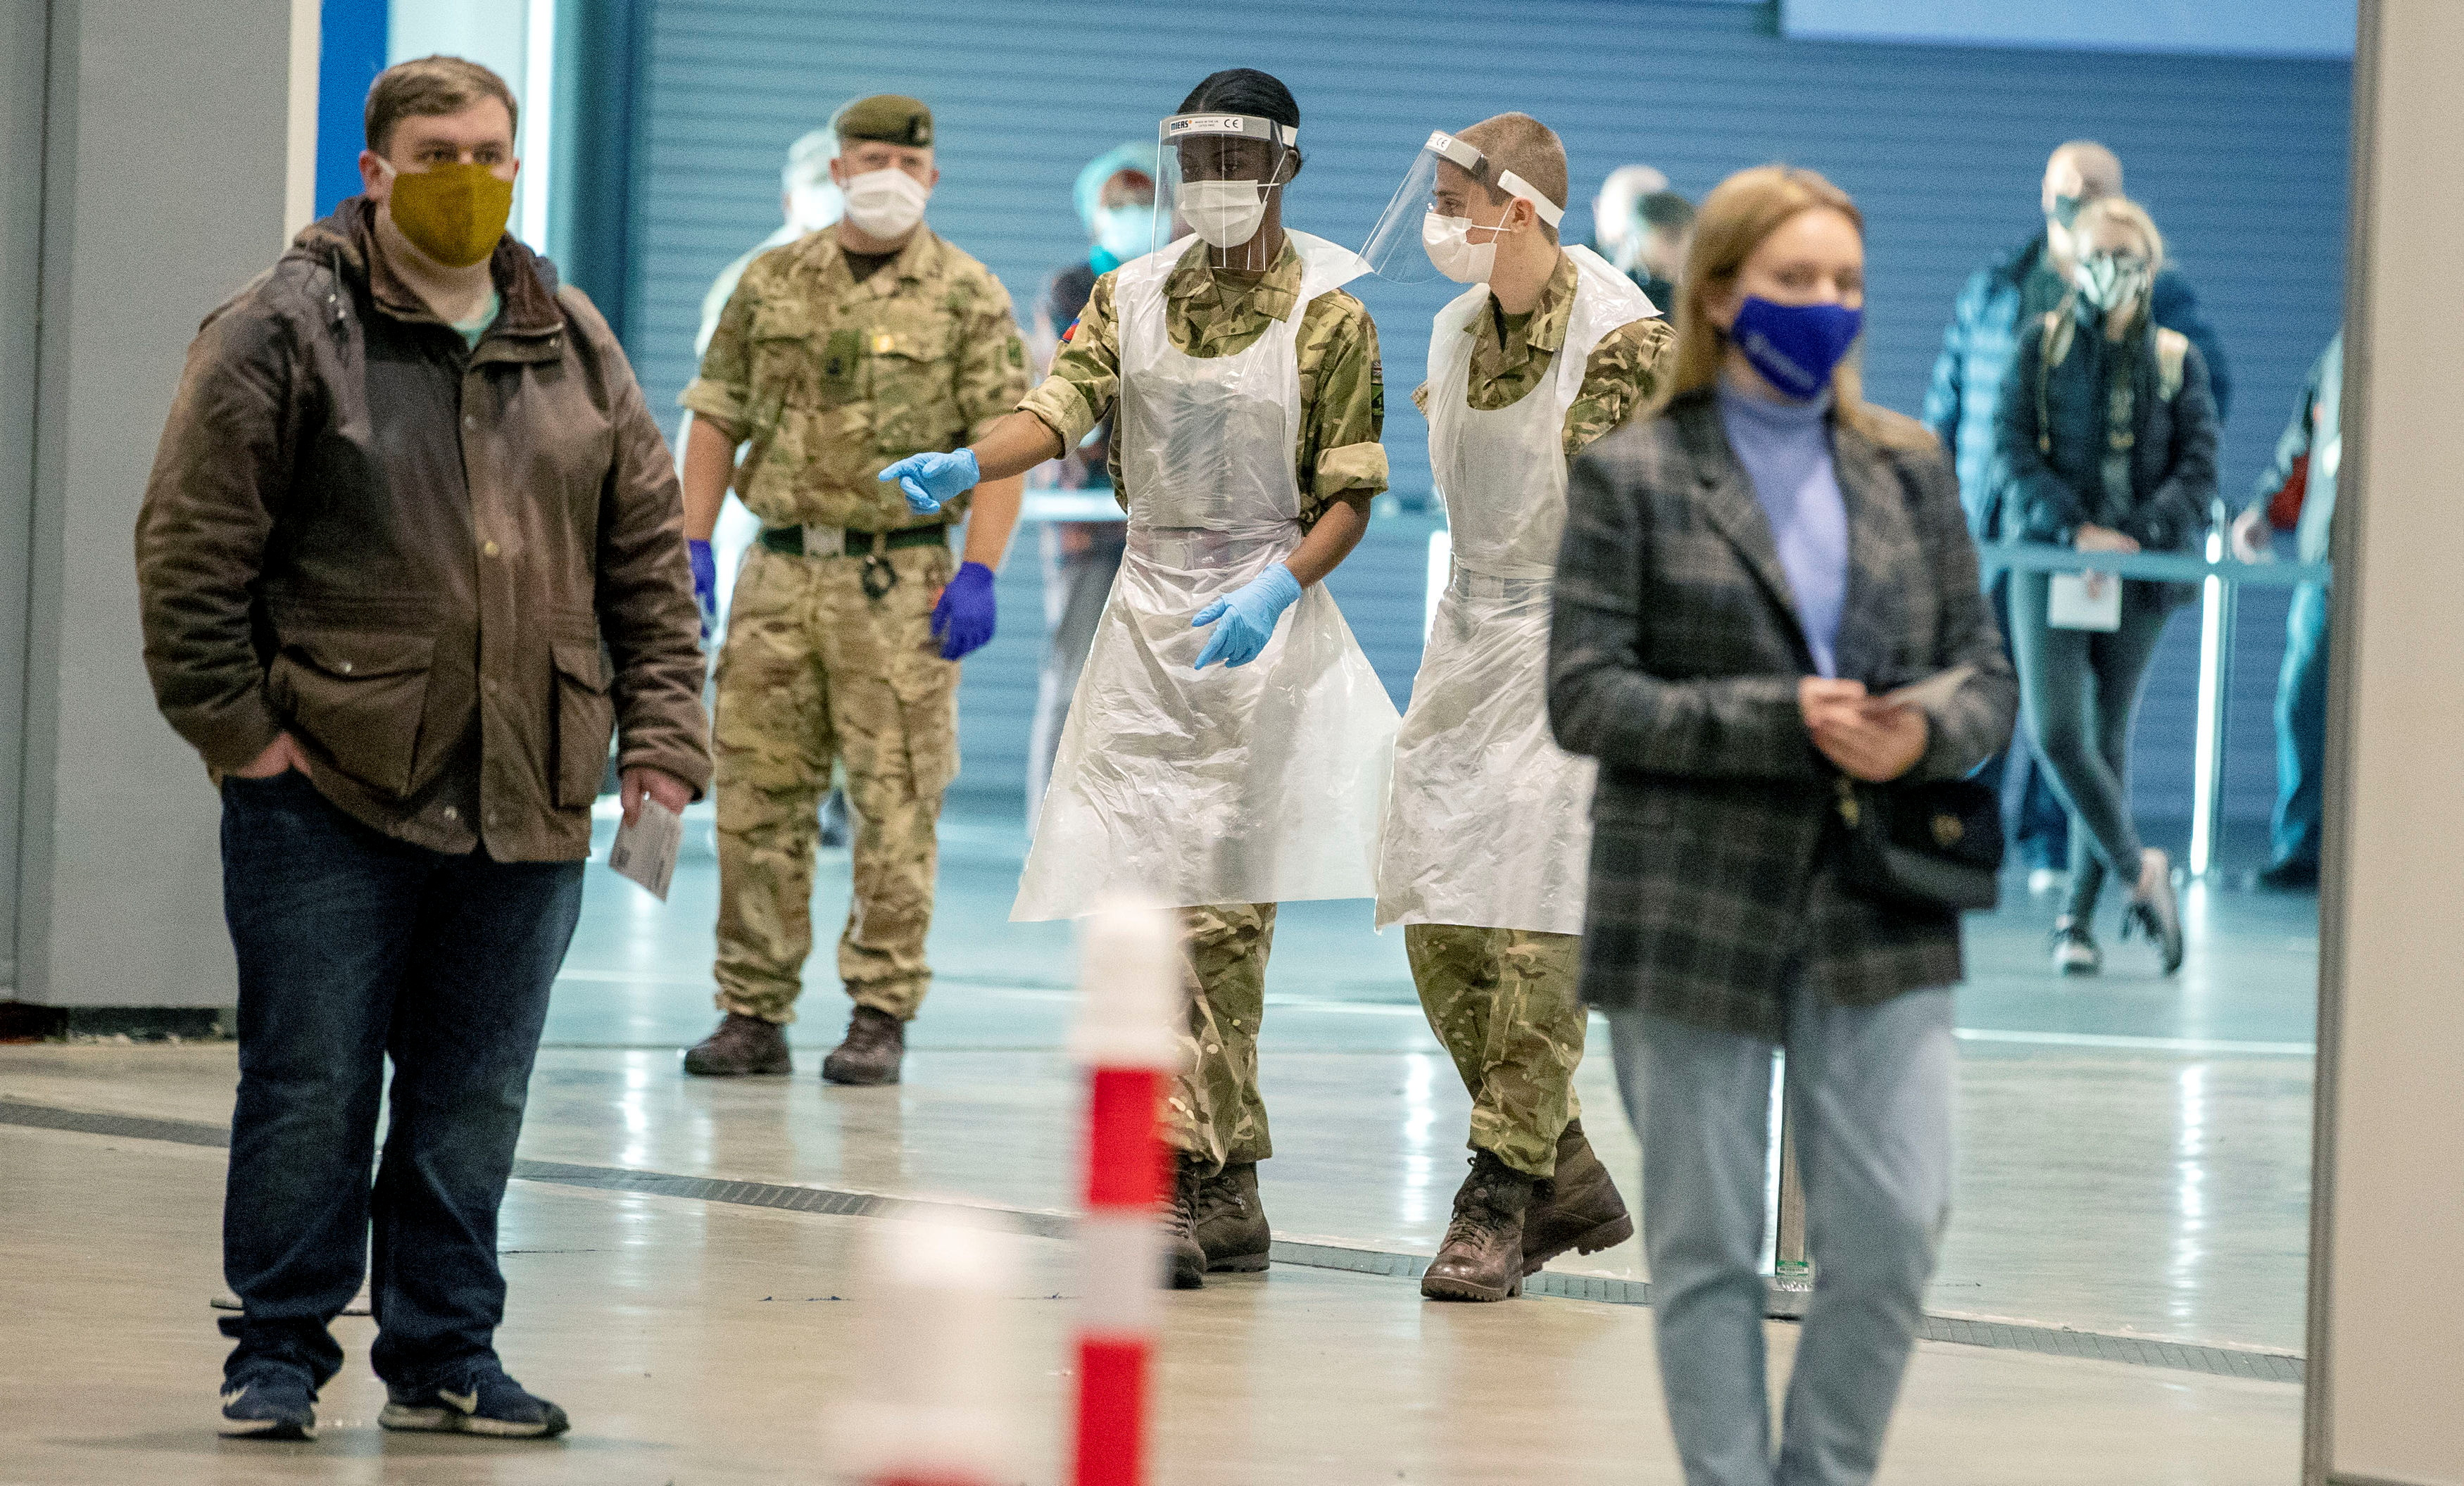 Soldiers direct people at The Exhibition Centre, which has been set up as a testing centre as part of the mass coronavirus disease (COVID-19) testing, in Liverpool, Britain, November 6, 2020. Peter Byrne/PA Wire/Pool via REUTERS/File Photo